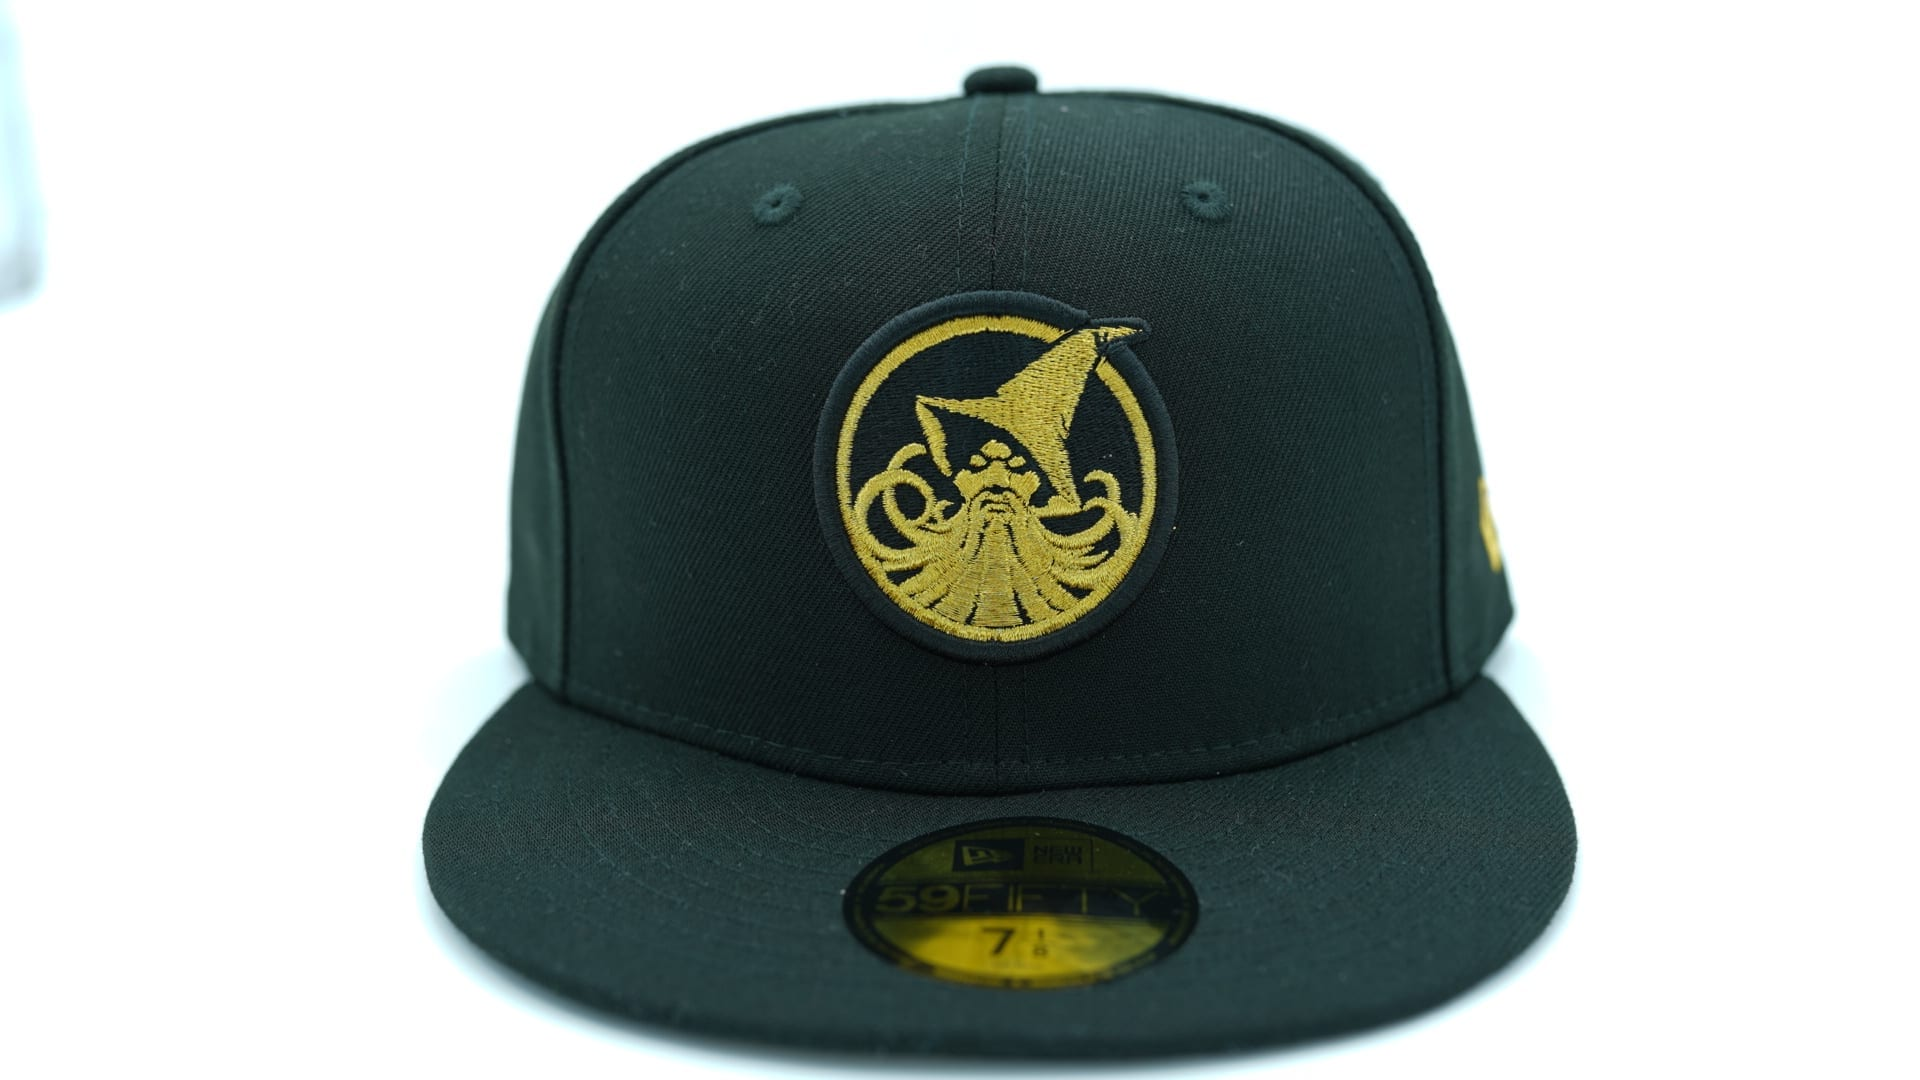 ... closeout new era x mlb new york yankees apple59fifty fitted baseball cap  strictly fitteds 4d771 ebee5 47a60fc77e1